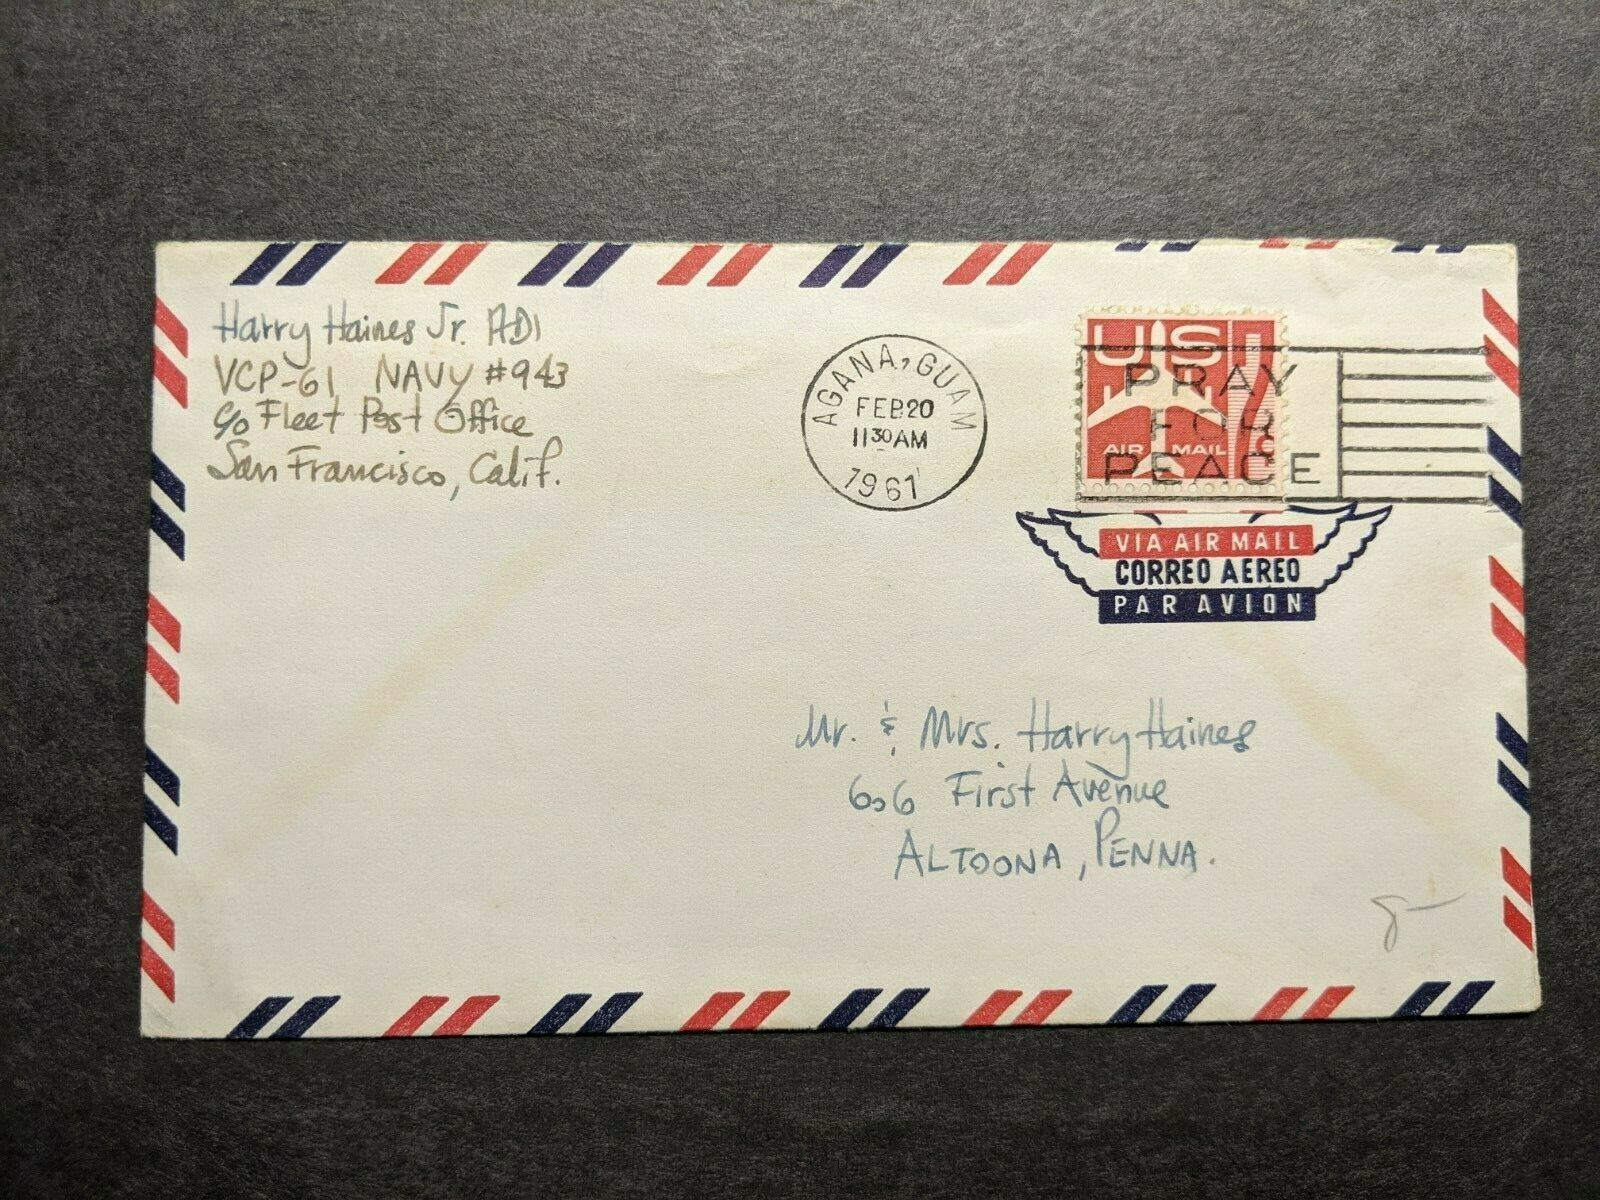 Navy 943 Agana Guam Marianas Islands 1961 Naval Cover Vcp 61 Ebay